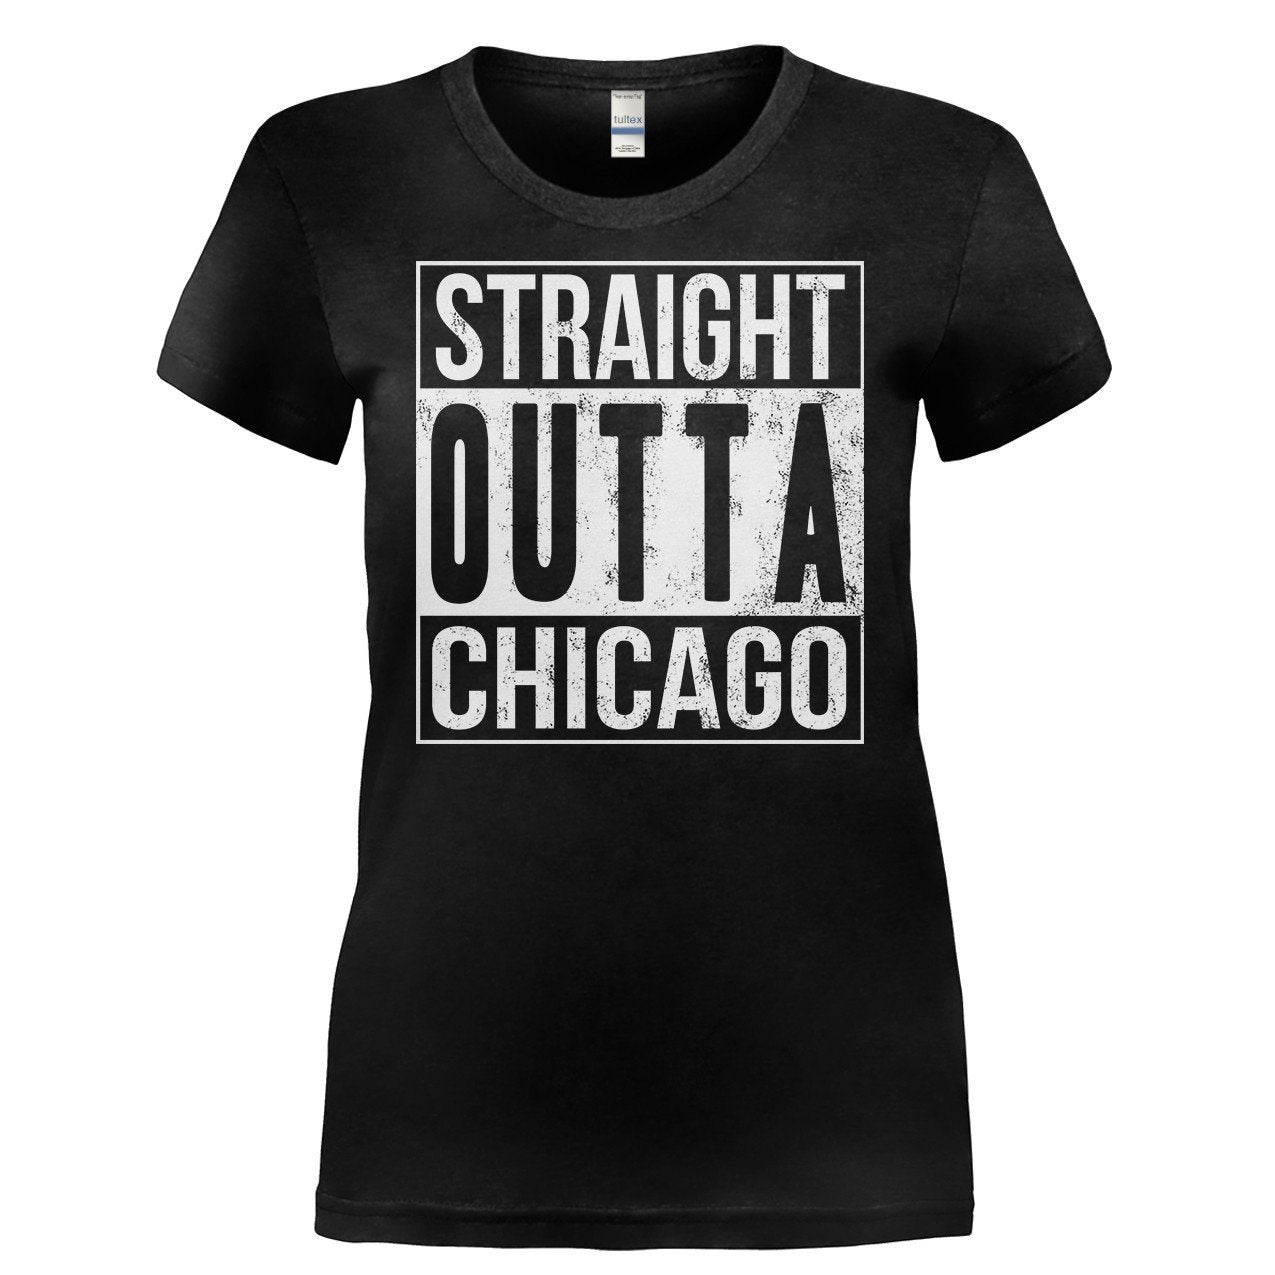 Chicago T-Shirt Straight Outta Chicago  Unisex Youth Shirts